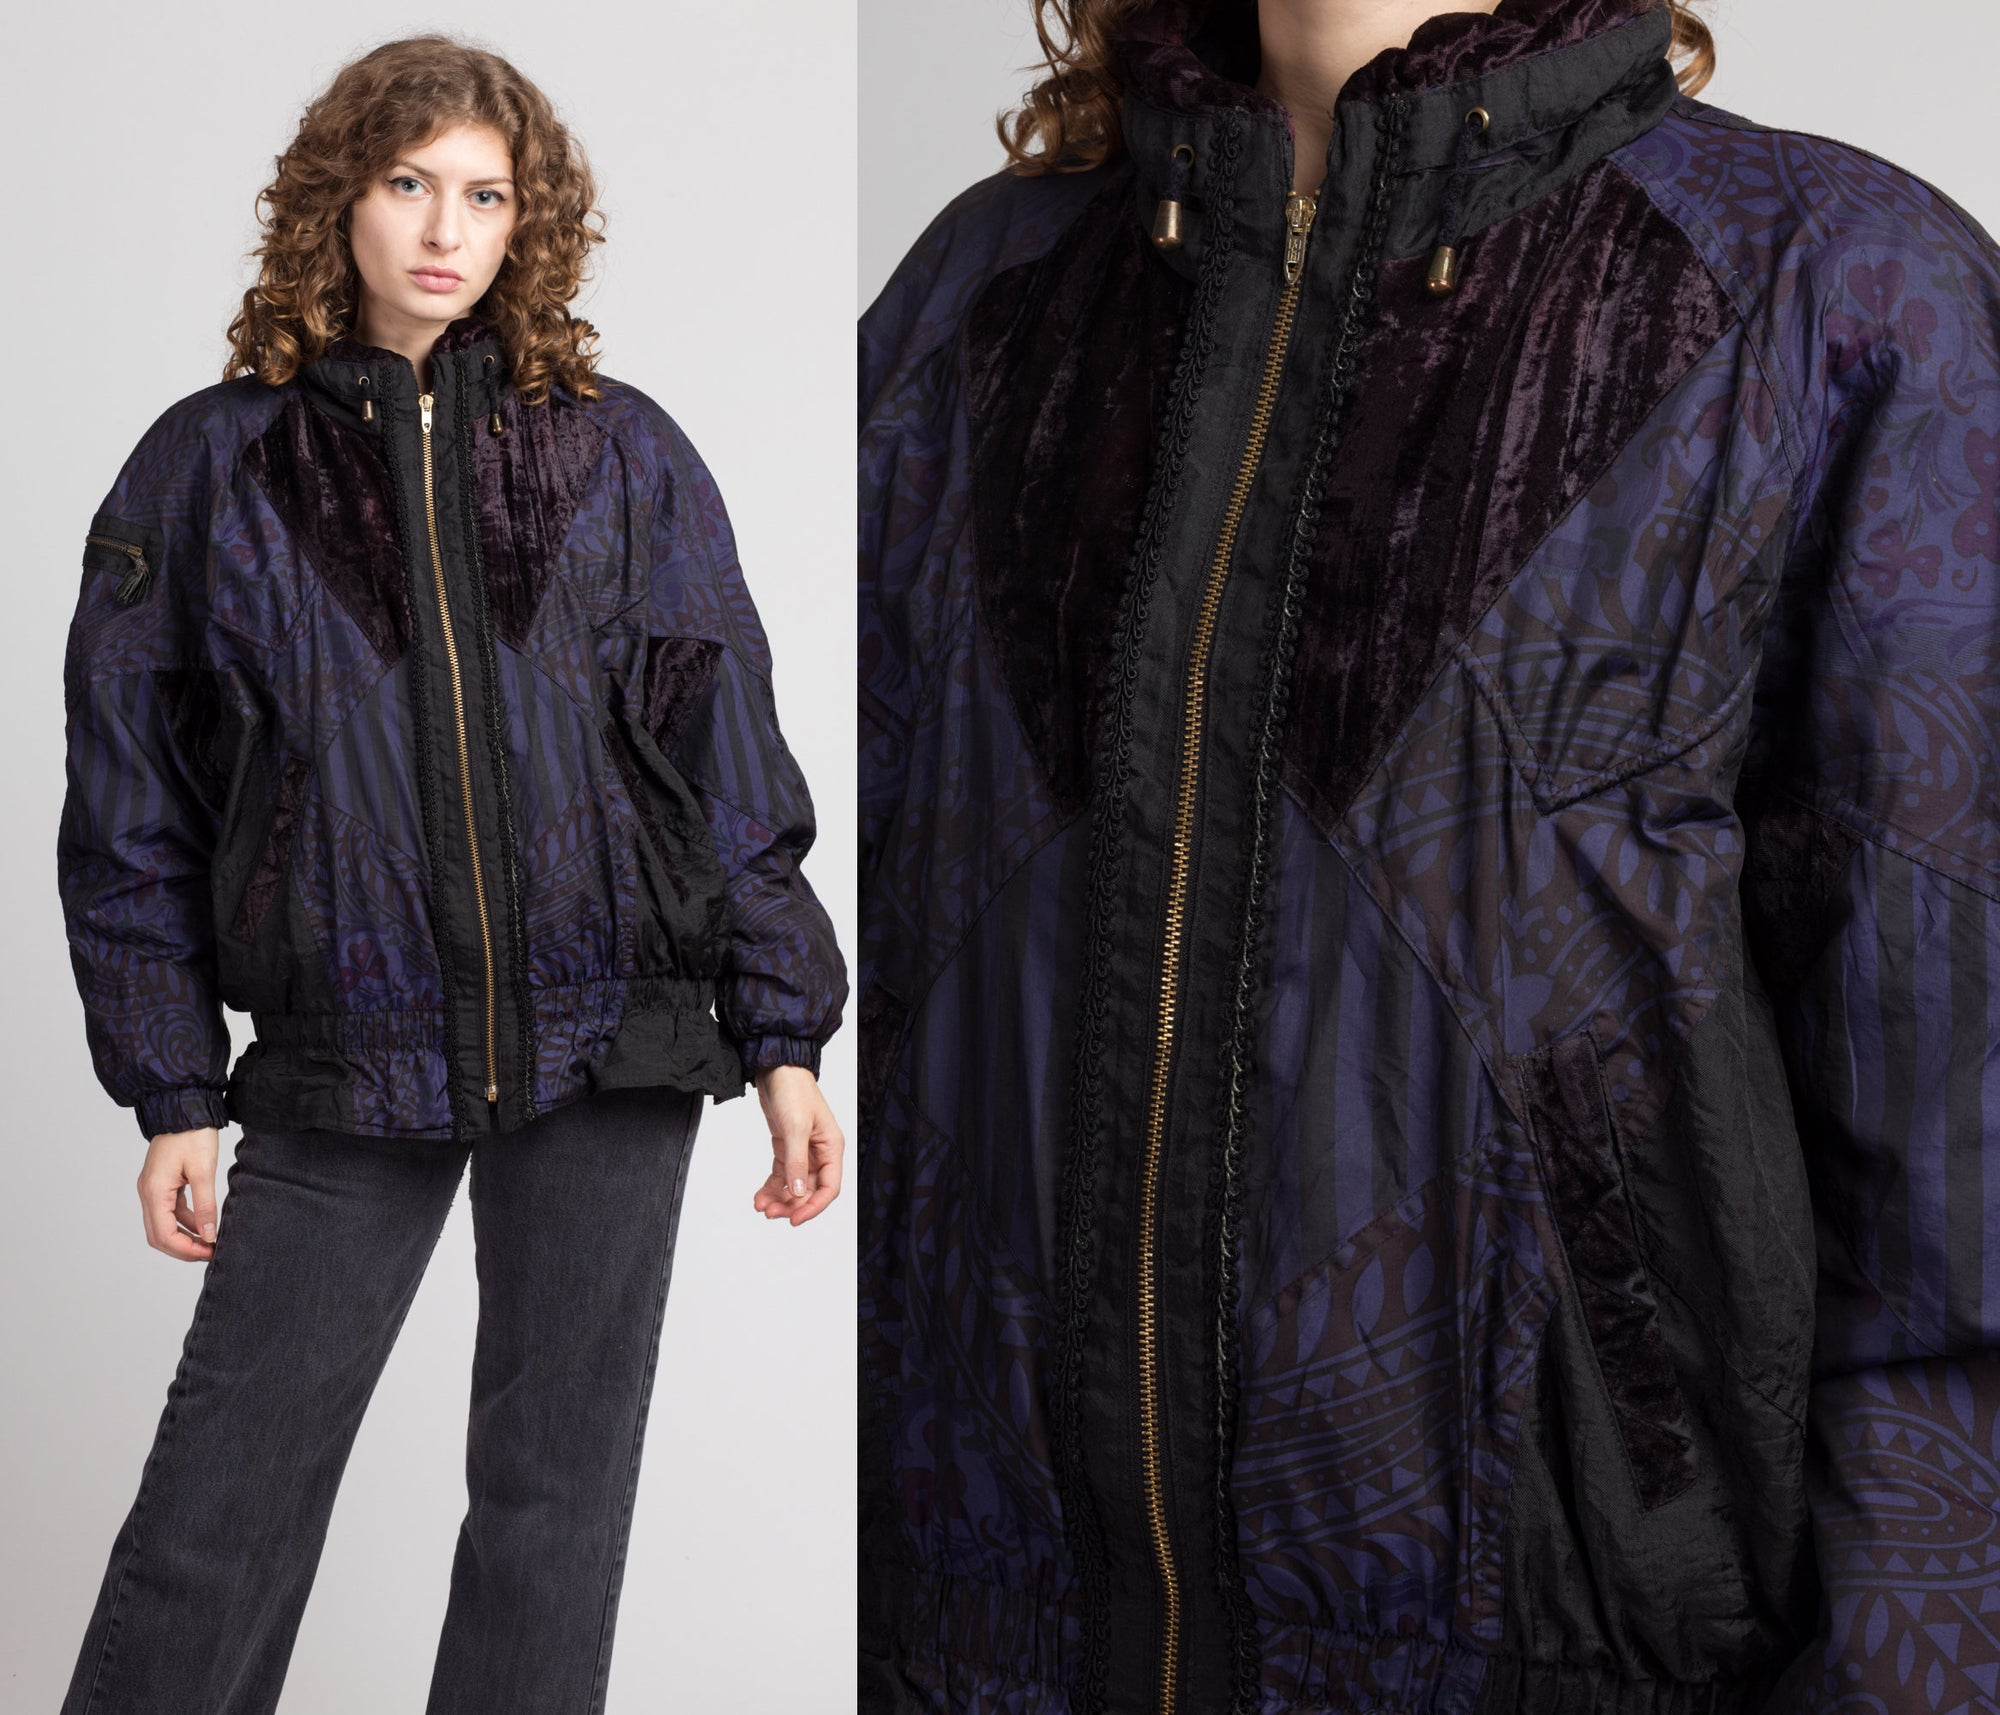 80s 90s Velvet Trim Oversize Abstract Print Windbreaker - Medium